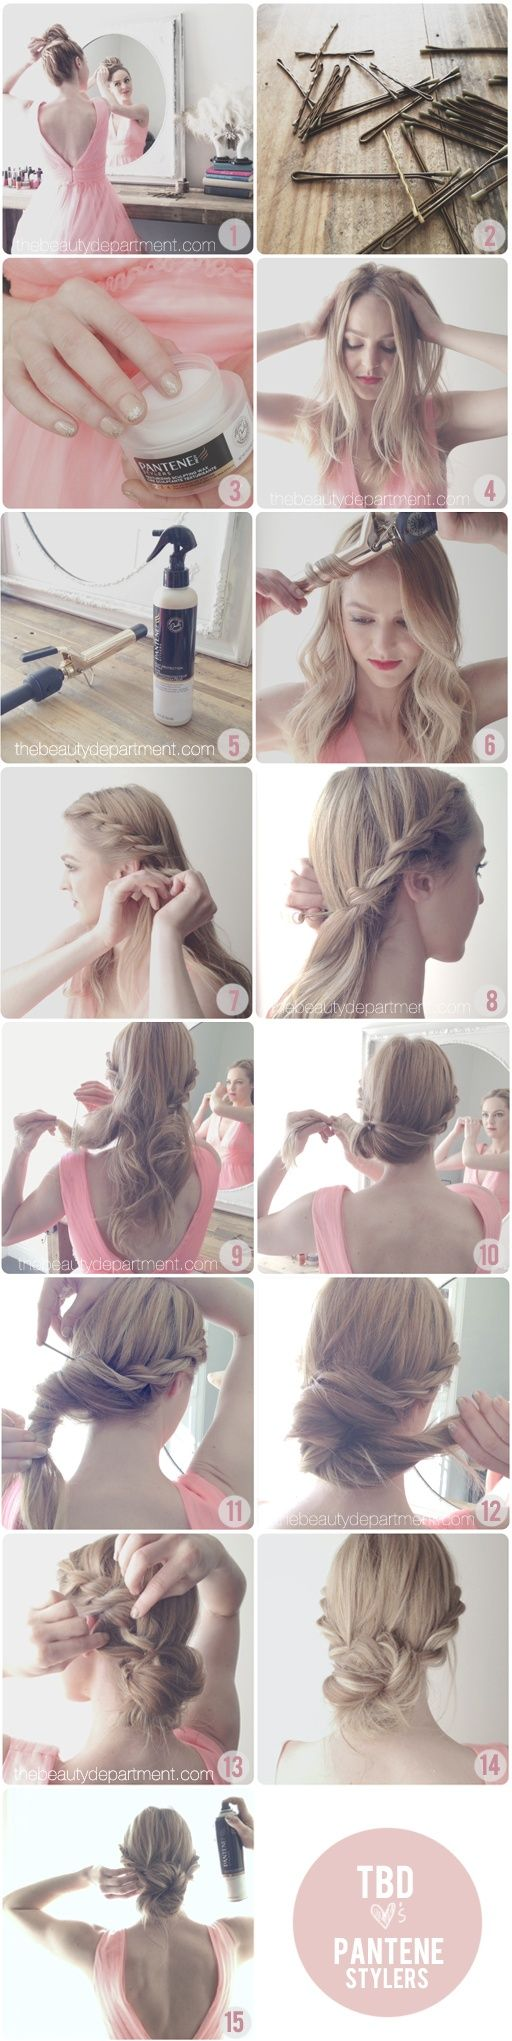 How to master the rope braid chignon with a little help from Pantene's new Stylers line!